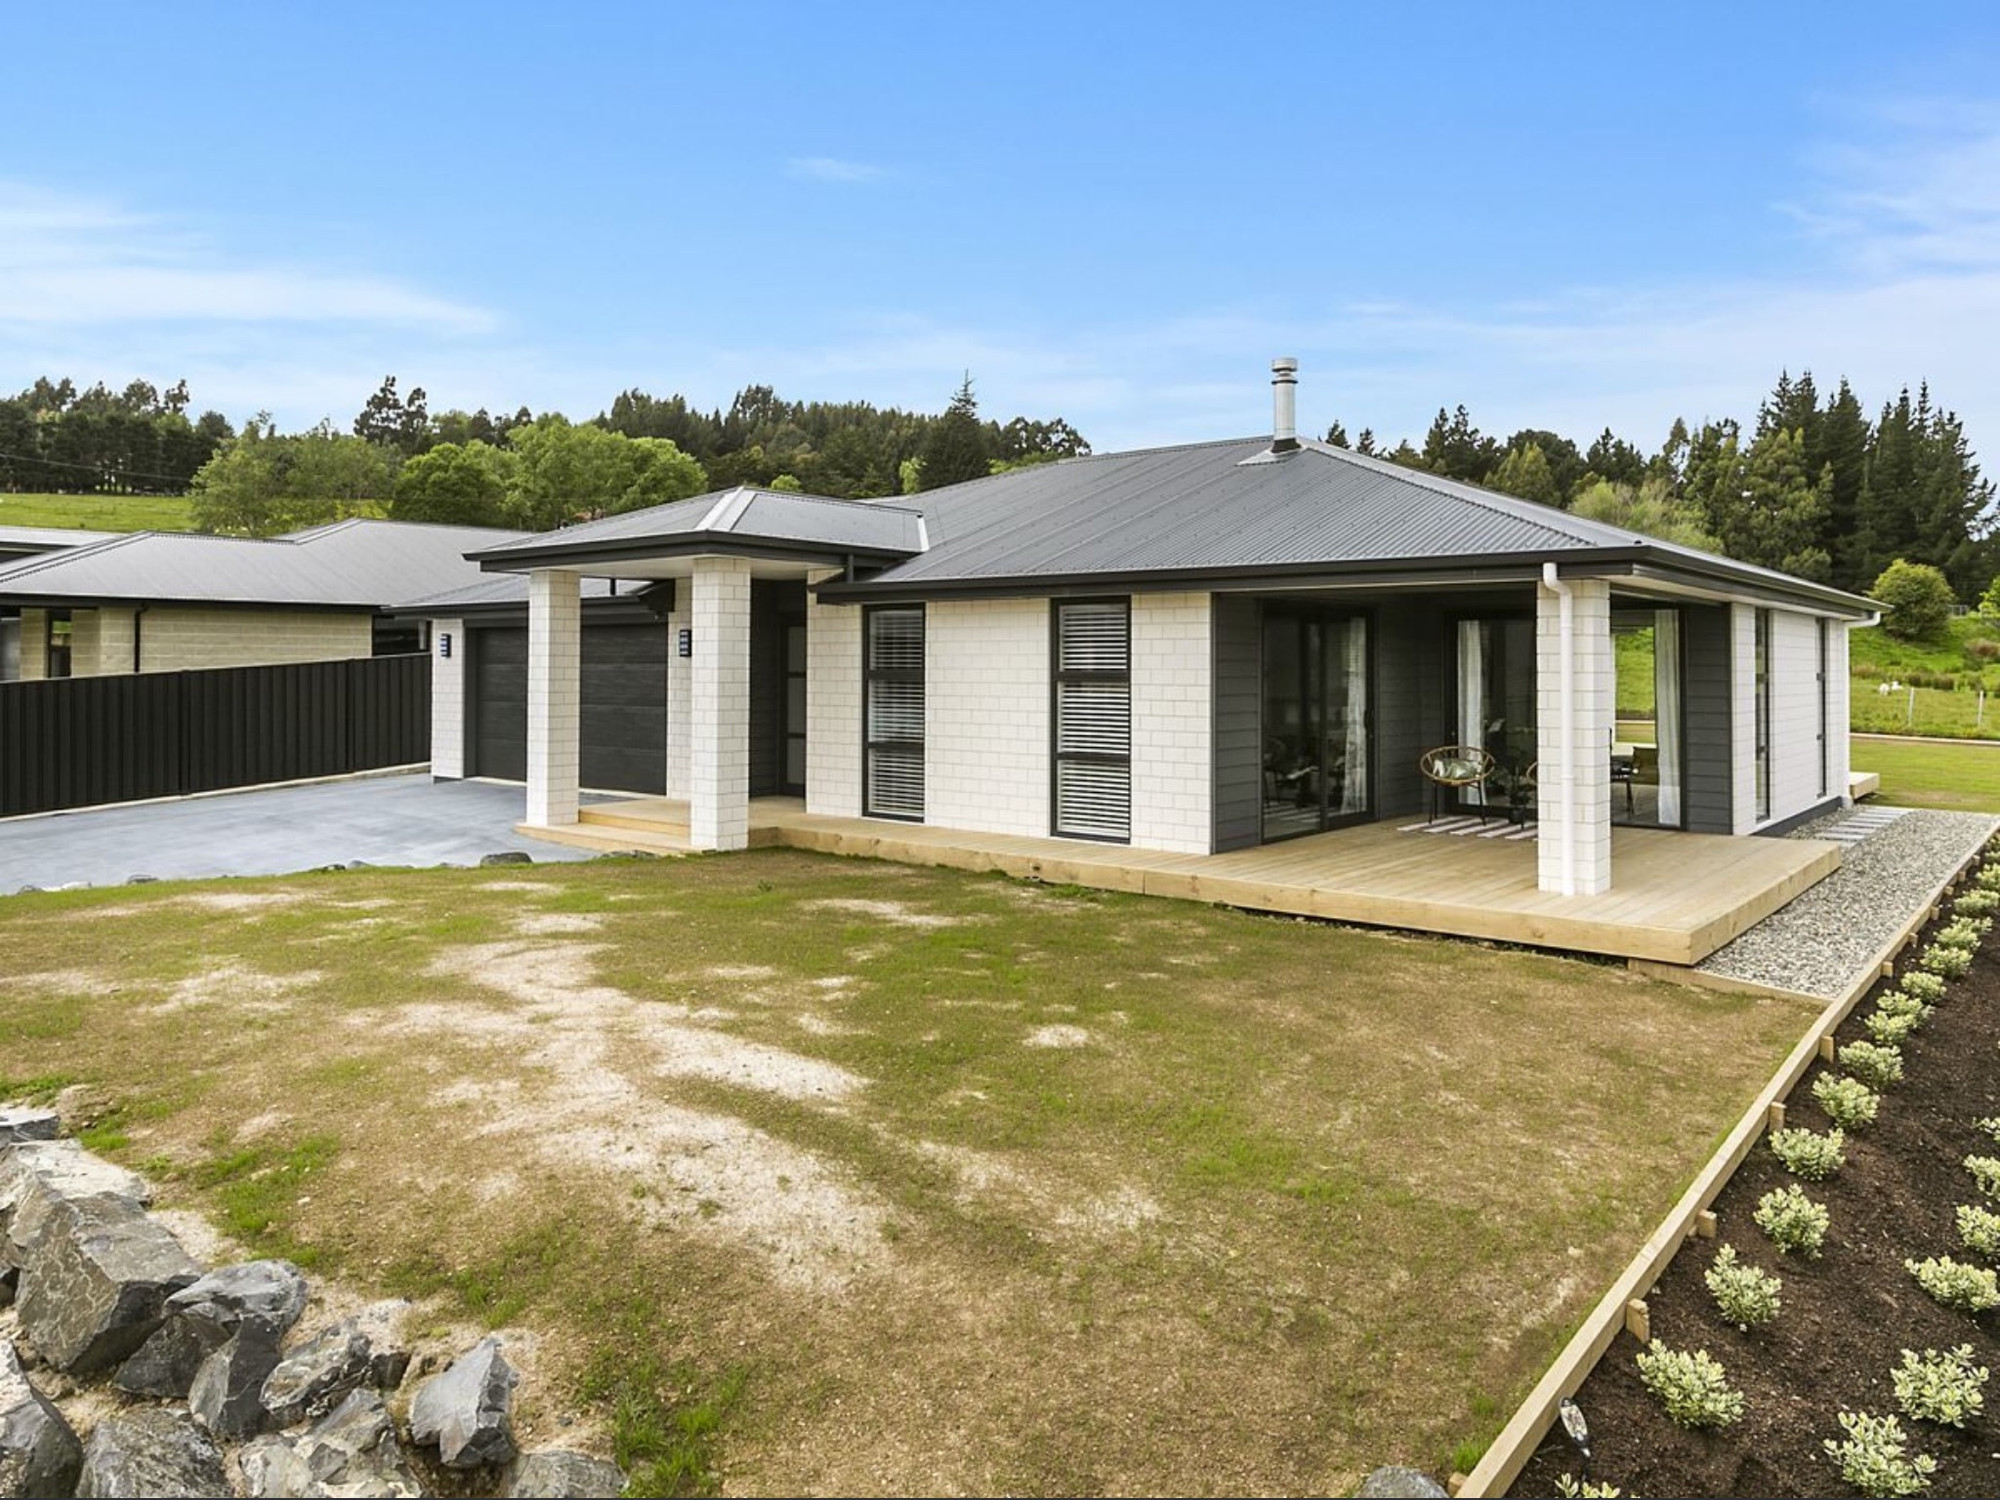 New build house completed by Eoin Kirk from Outlet Homes